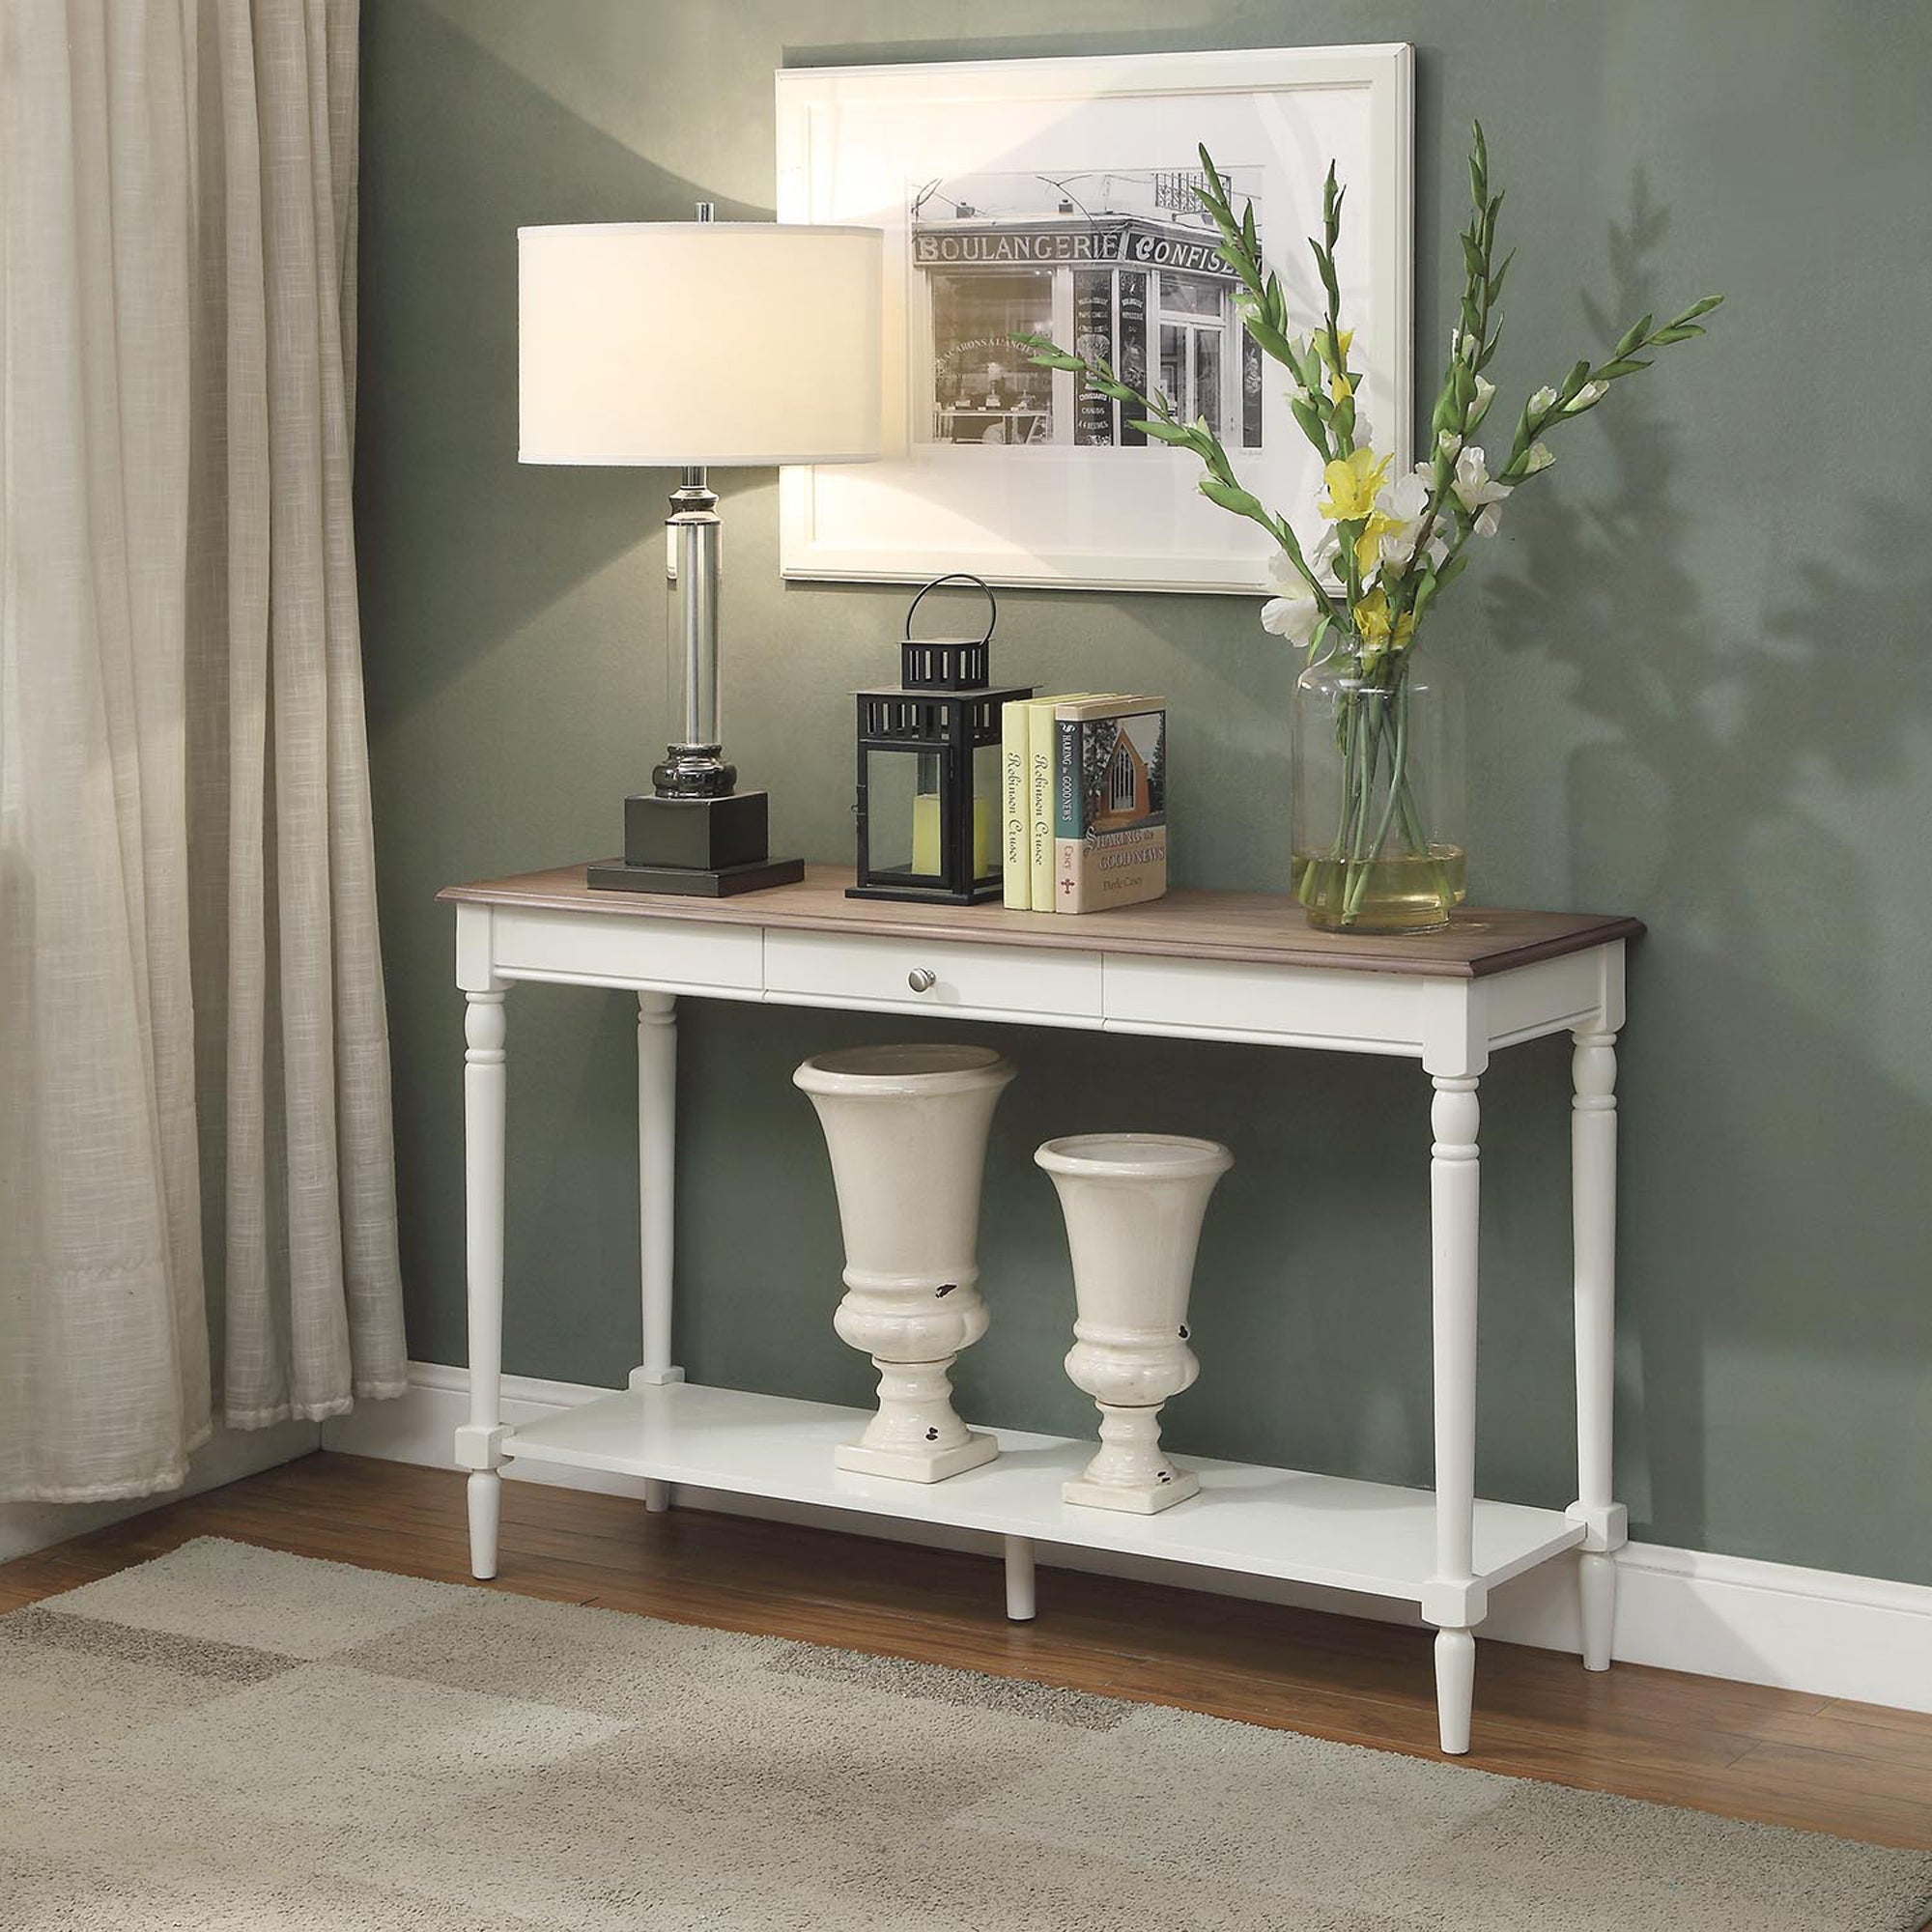 Convenience Concepts French Country Console Table w/ Draw...